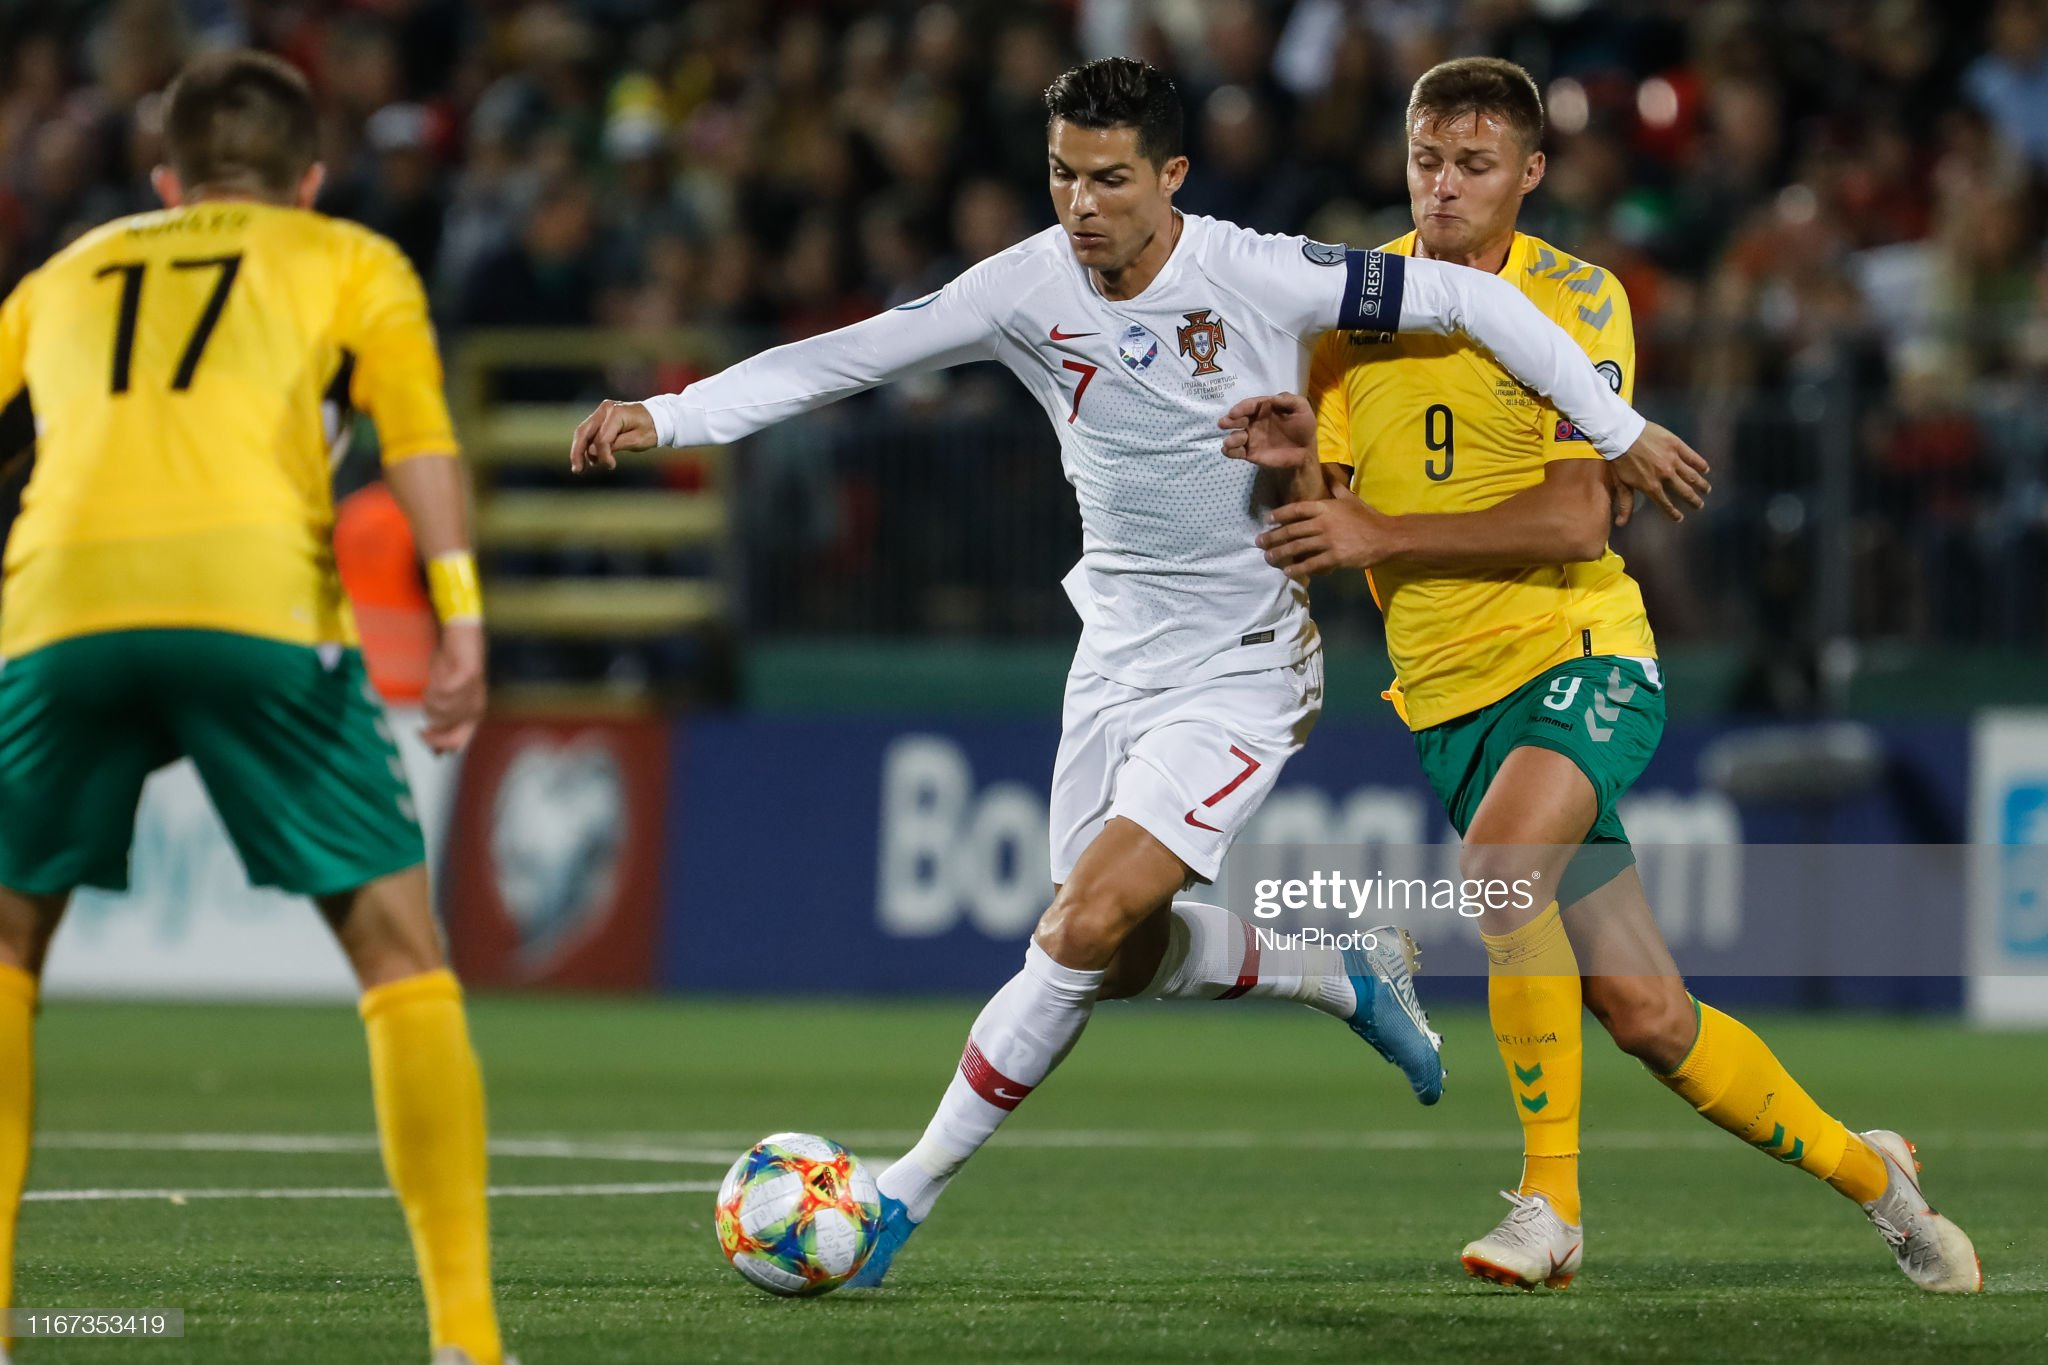 Portugal v Lithuania preview, prediction and odds